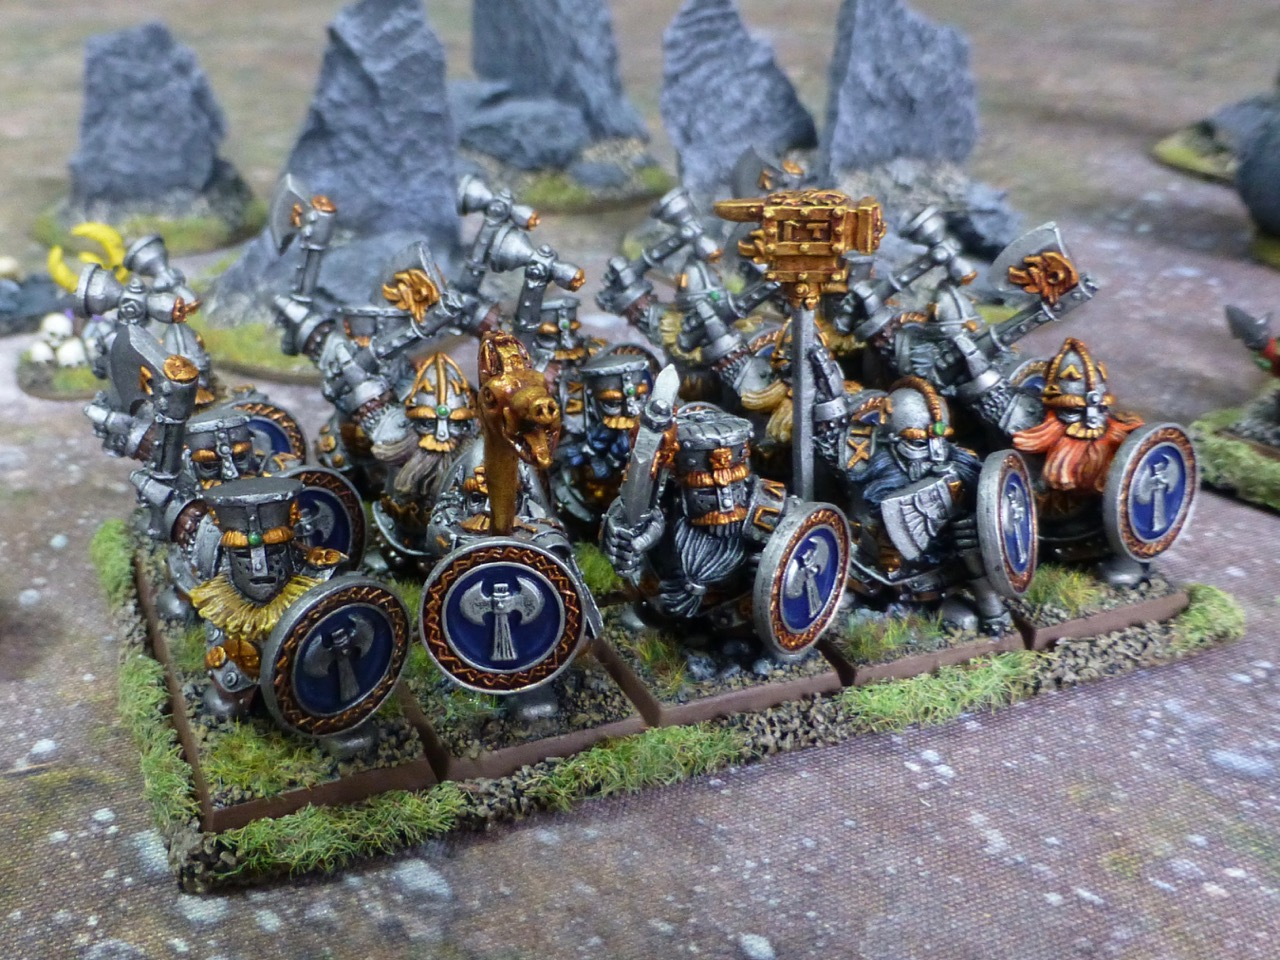 Angled view of the regiment of Dwarf Ironbreakers